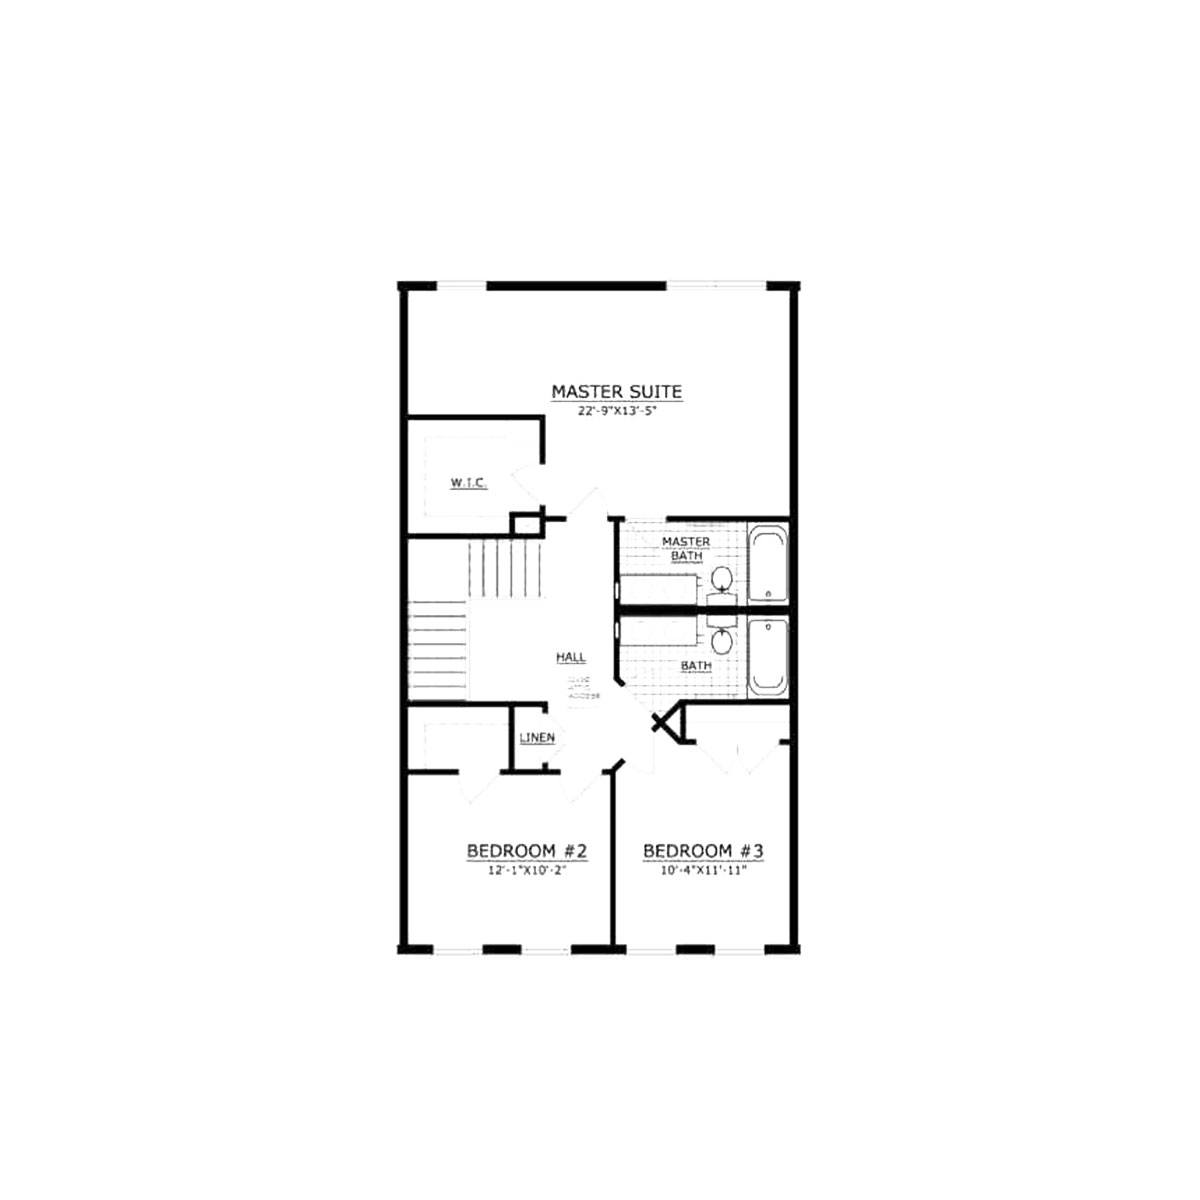 Floor plan for 3 bedroom rental townhome at St. Andrews